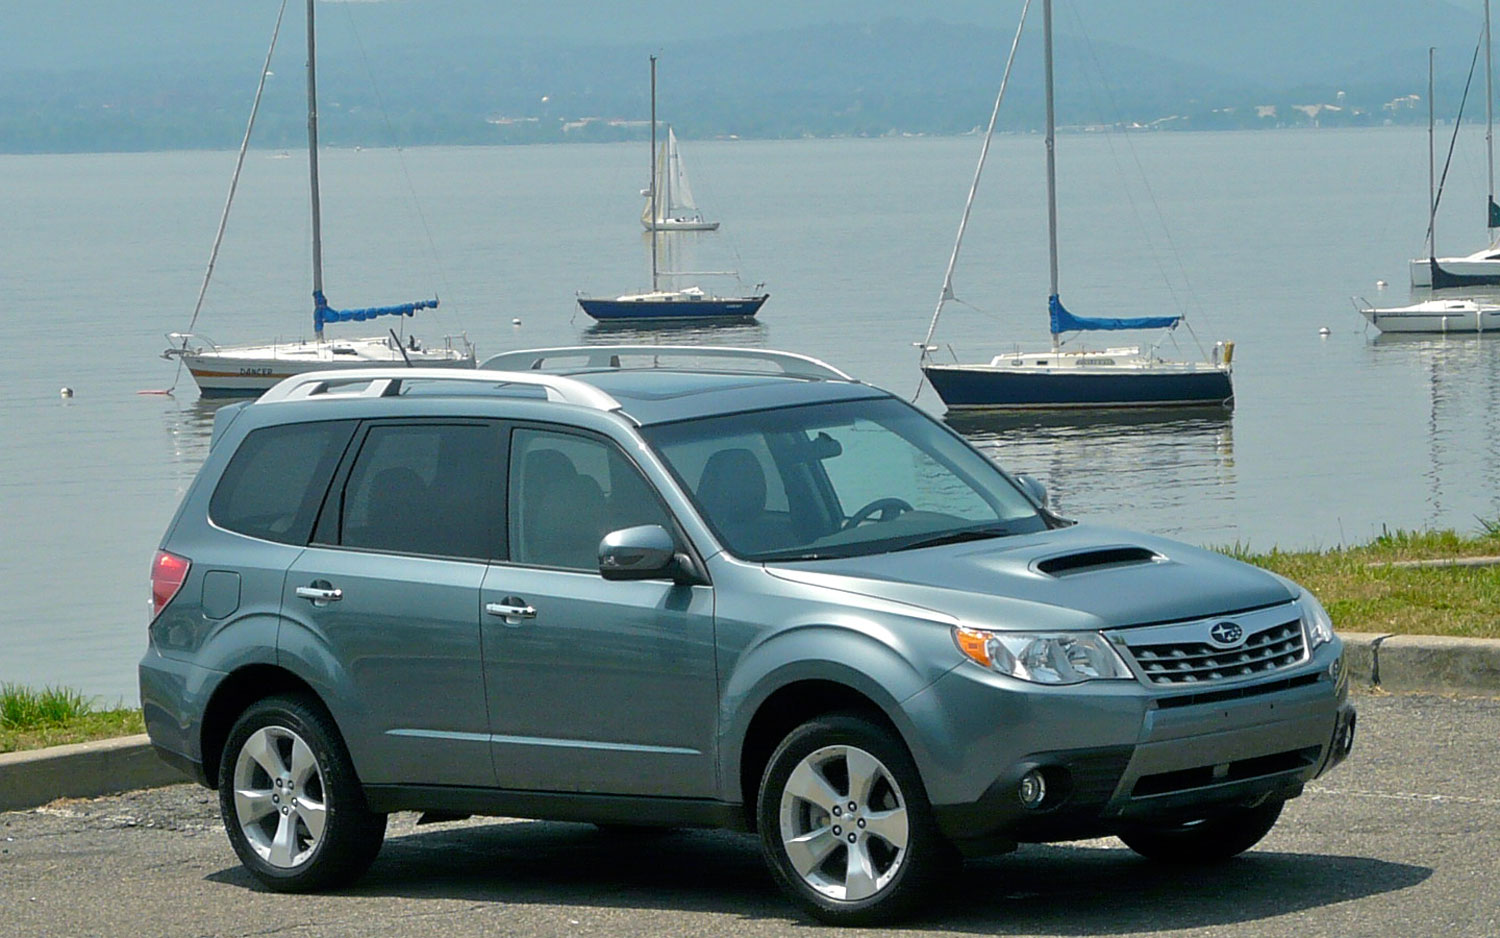 All Types 2011 forester : 2011 Subaru Forester - First Drive - Automobile Magazine